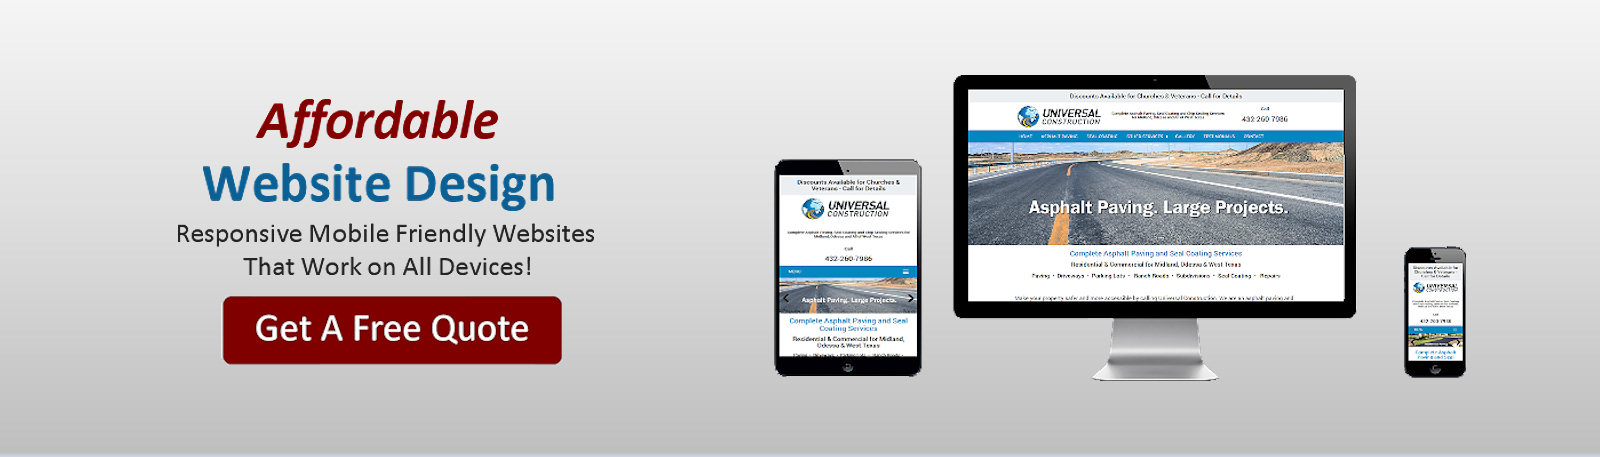 Hurst Web Design Custom Website Design Services for Fort Worth and Dallas